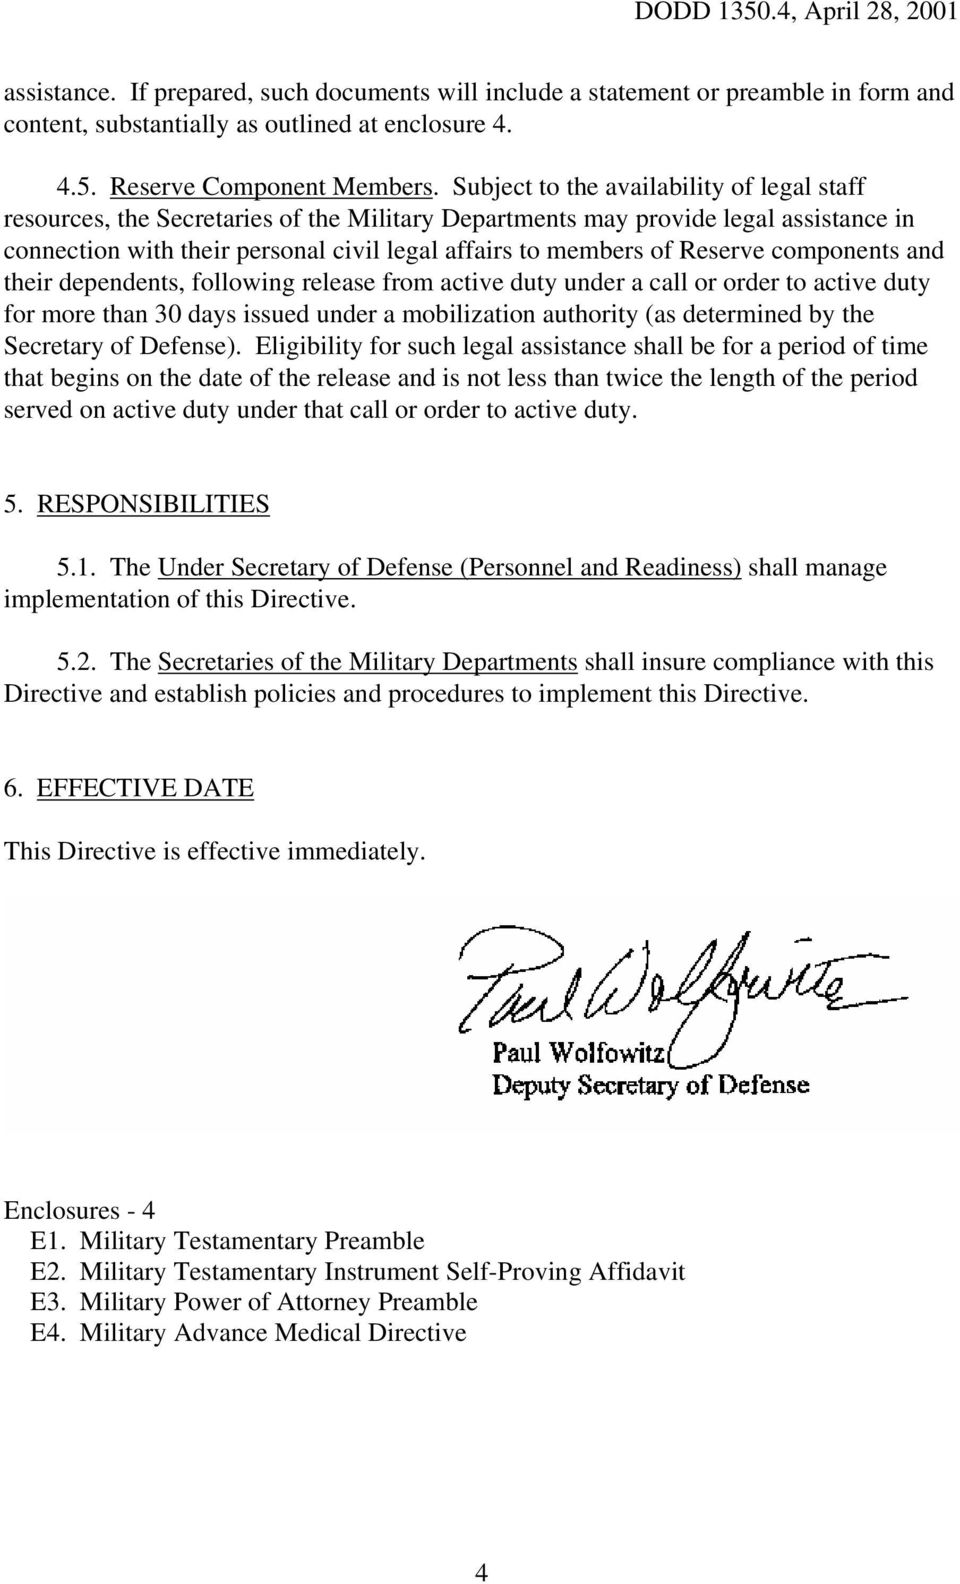 Reserve components and their dependents, following release from active duty under a call or order to active duty for more than 30 days issued under a mobilization authority (as determined by the